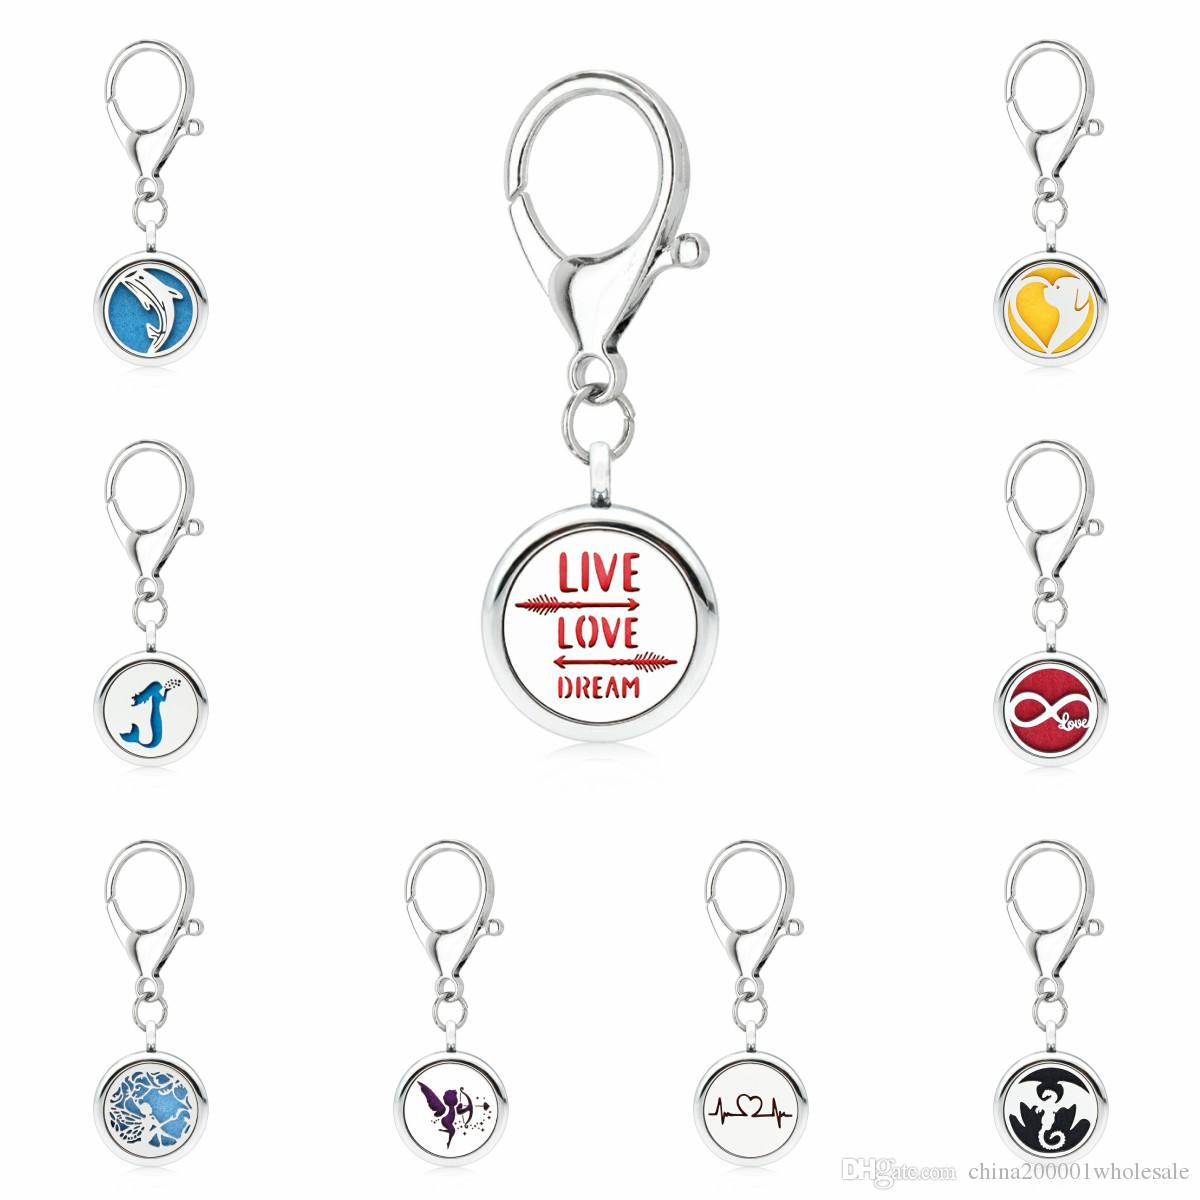 Live Love Dream Aroma Key Chain locket essential oil Locket Perfume Diffuser with Heart shape Lobster clasp Key ring 5pcs Pads